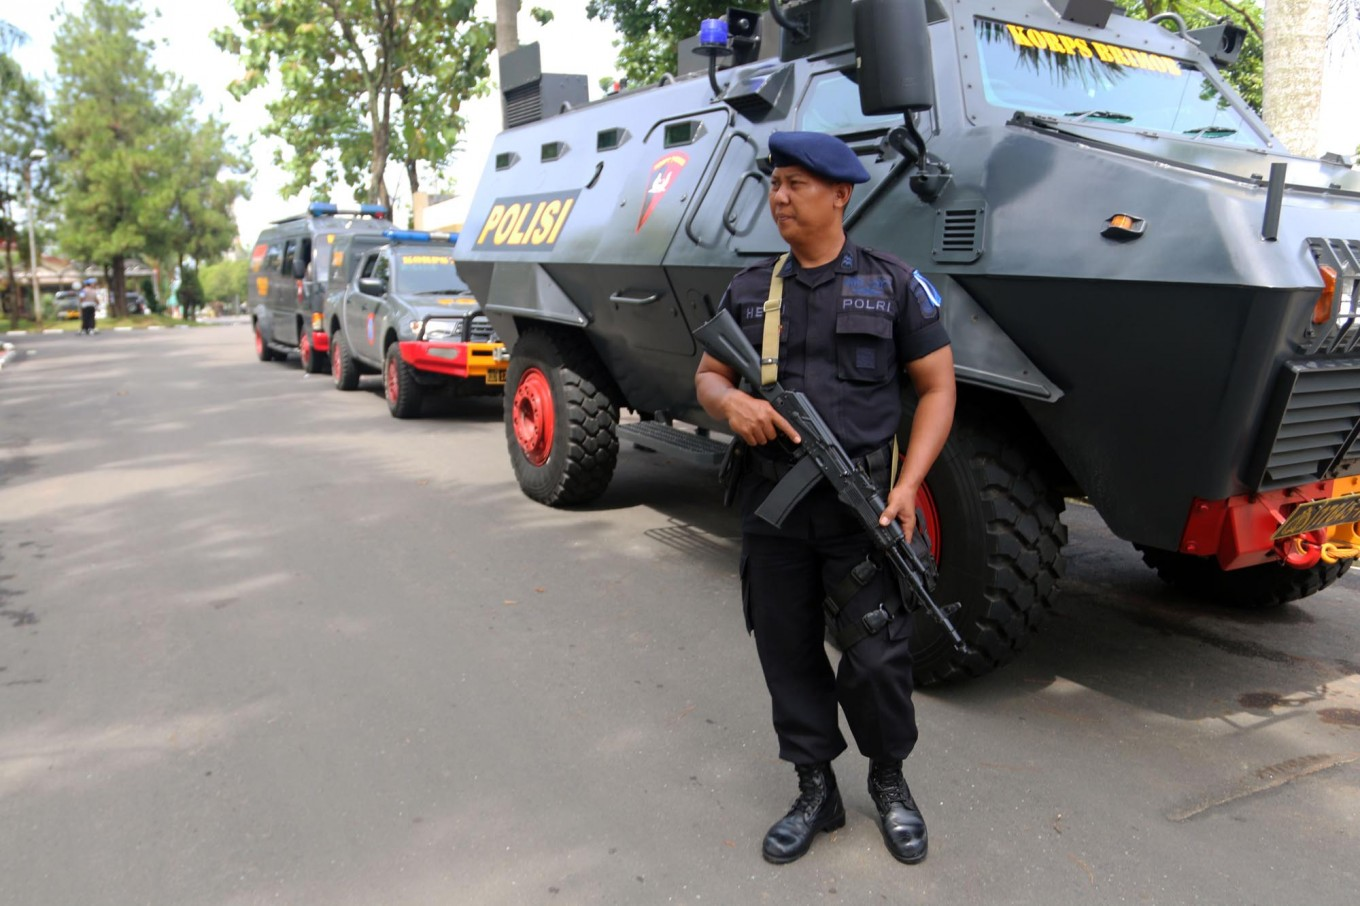 Medan Police attackers linked to IS: Police